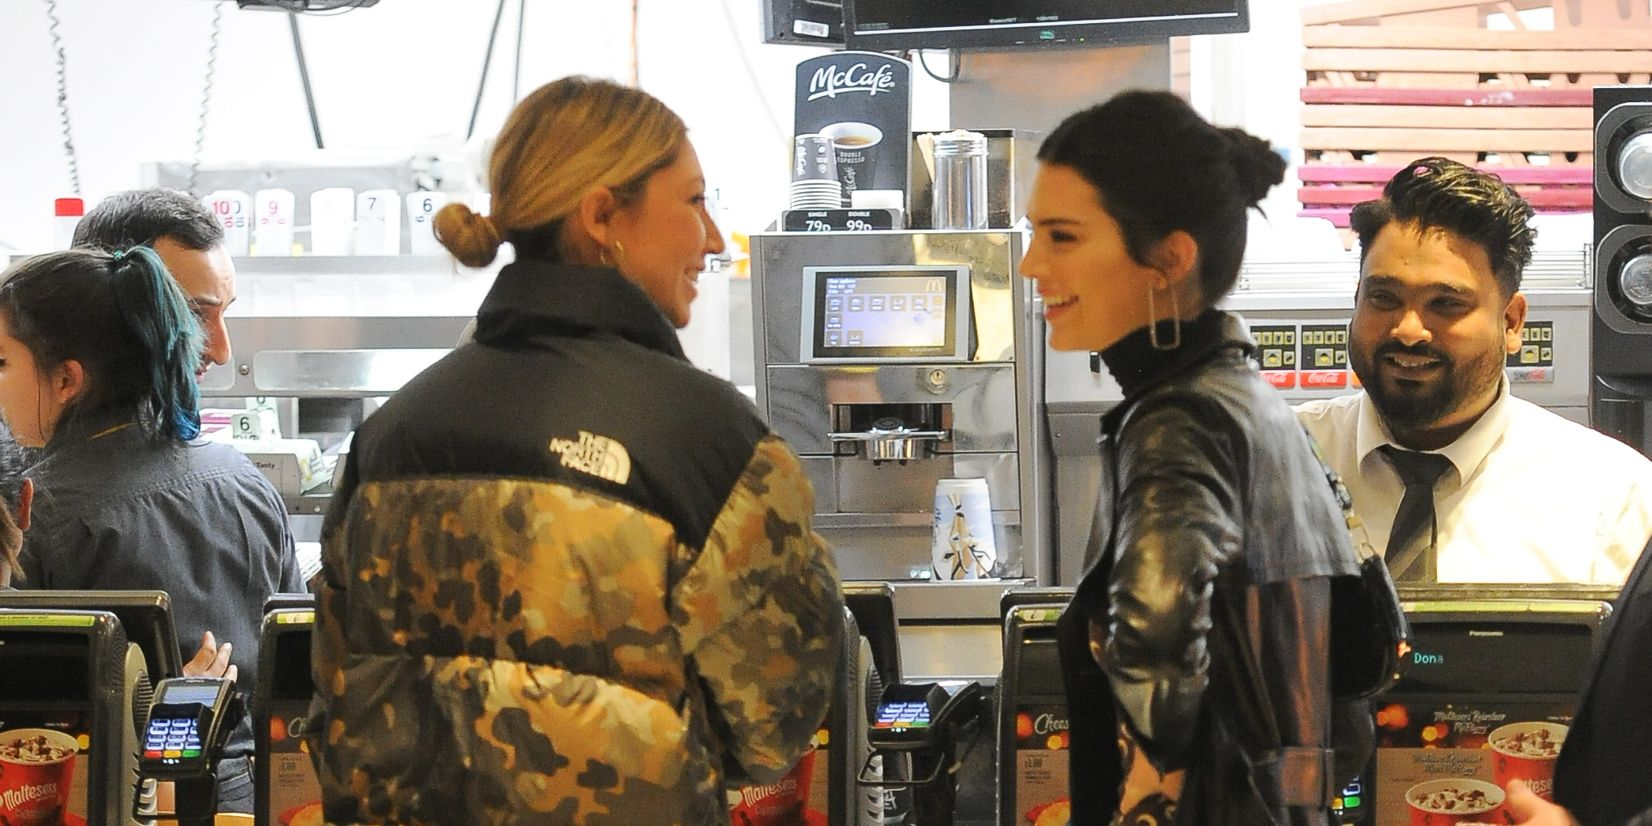 Kendall Jenner Stopped at McDonald's After the British Fashion Awards